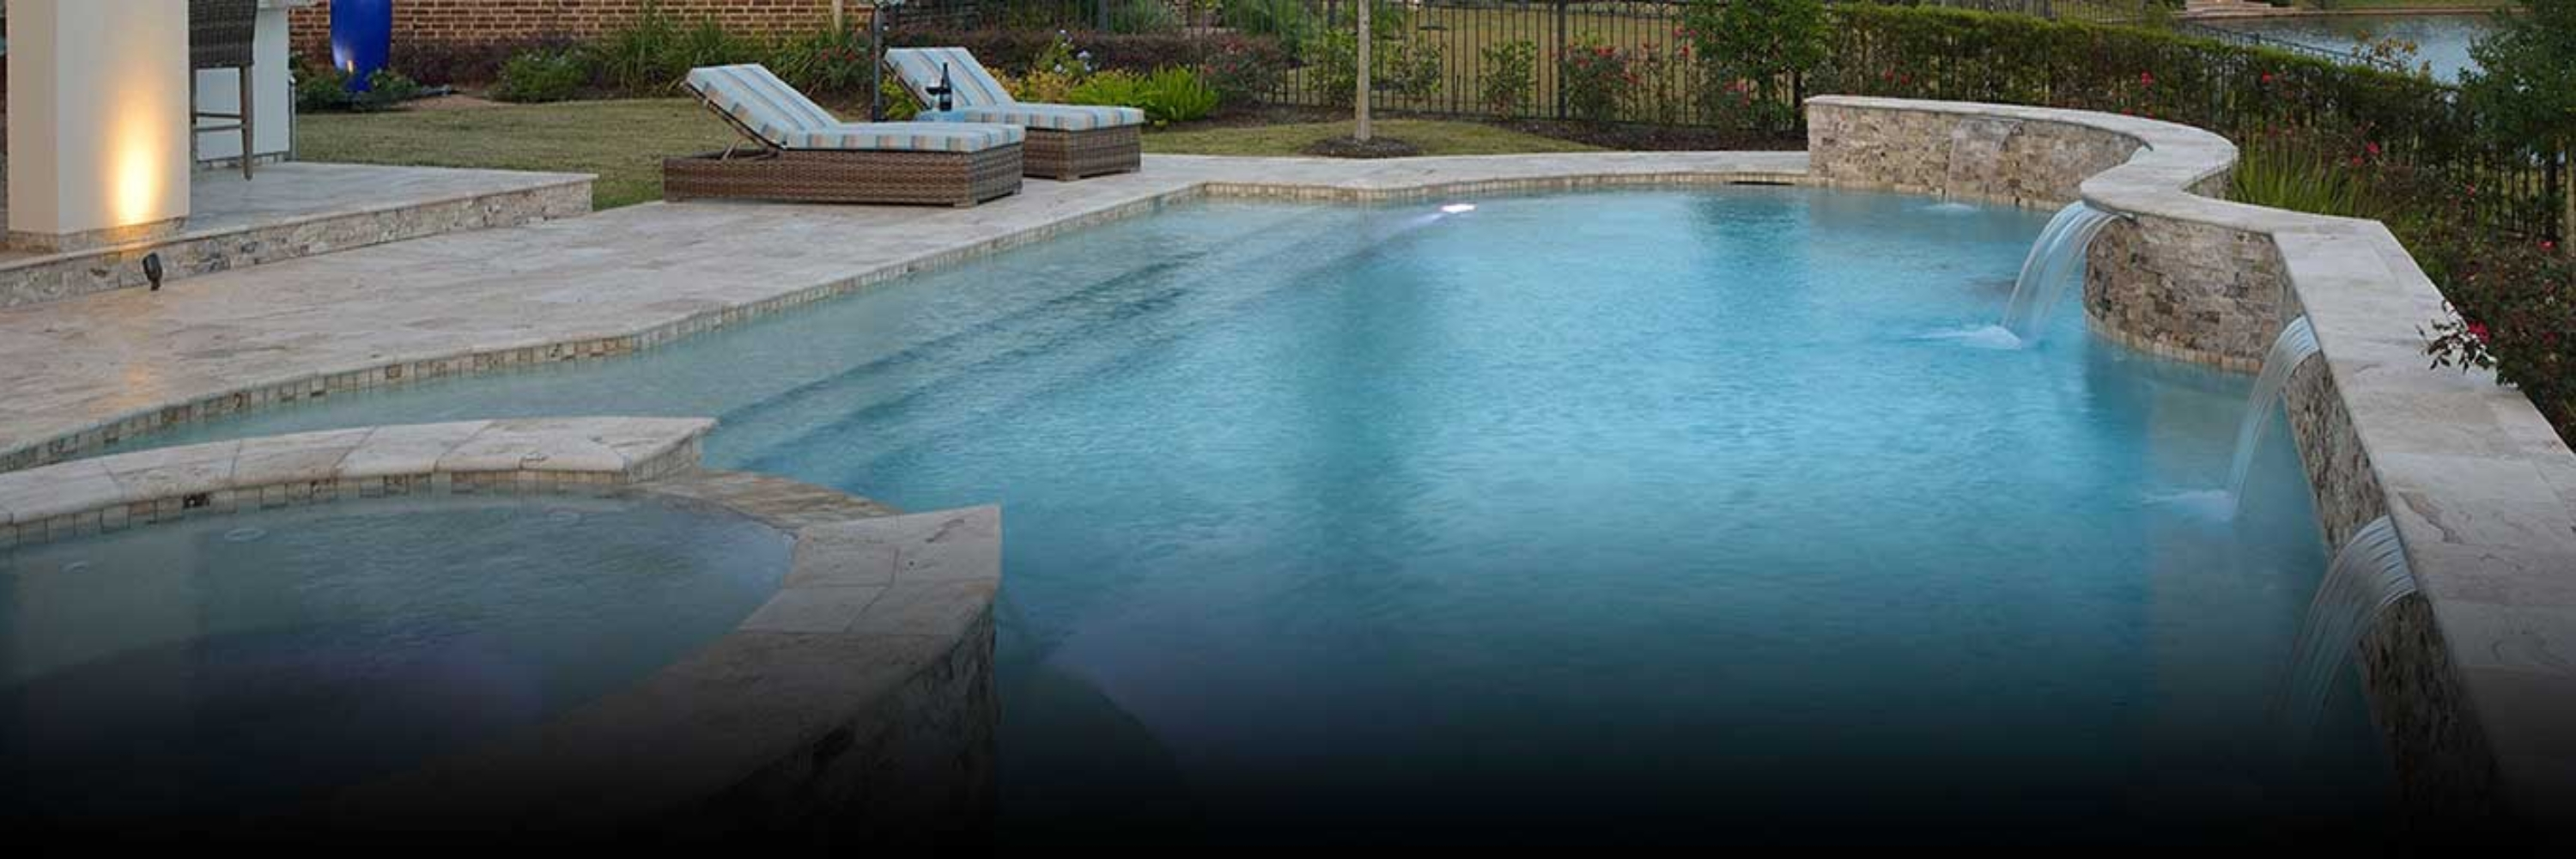 residential_pools_slider_1